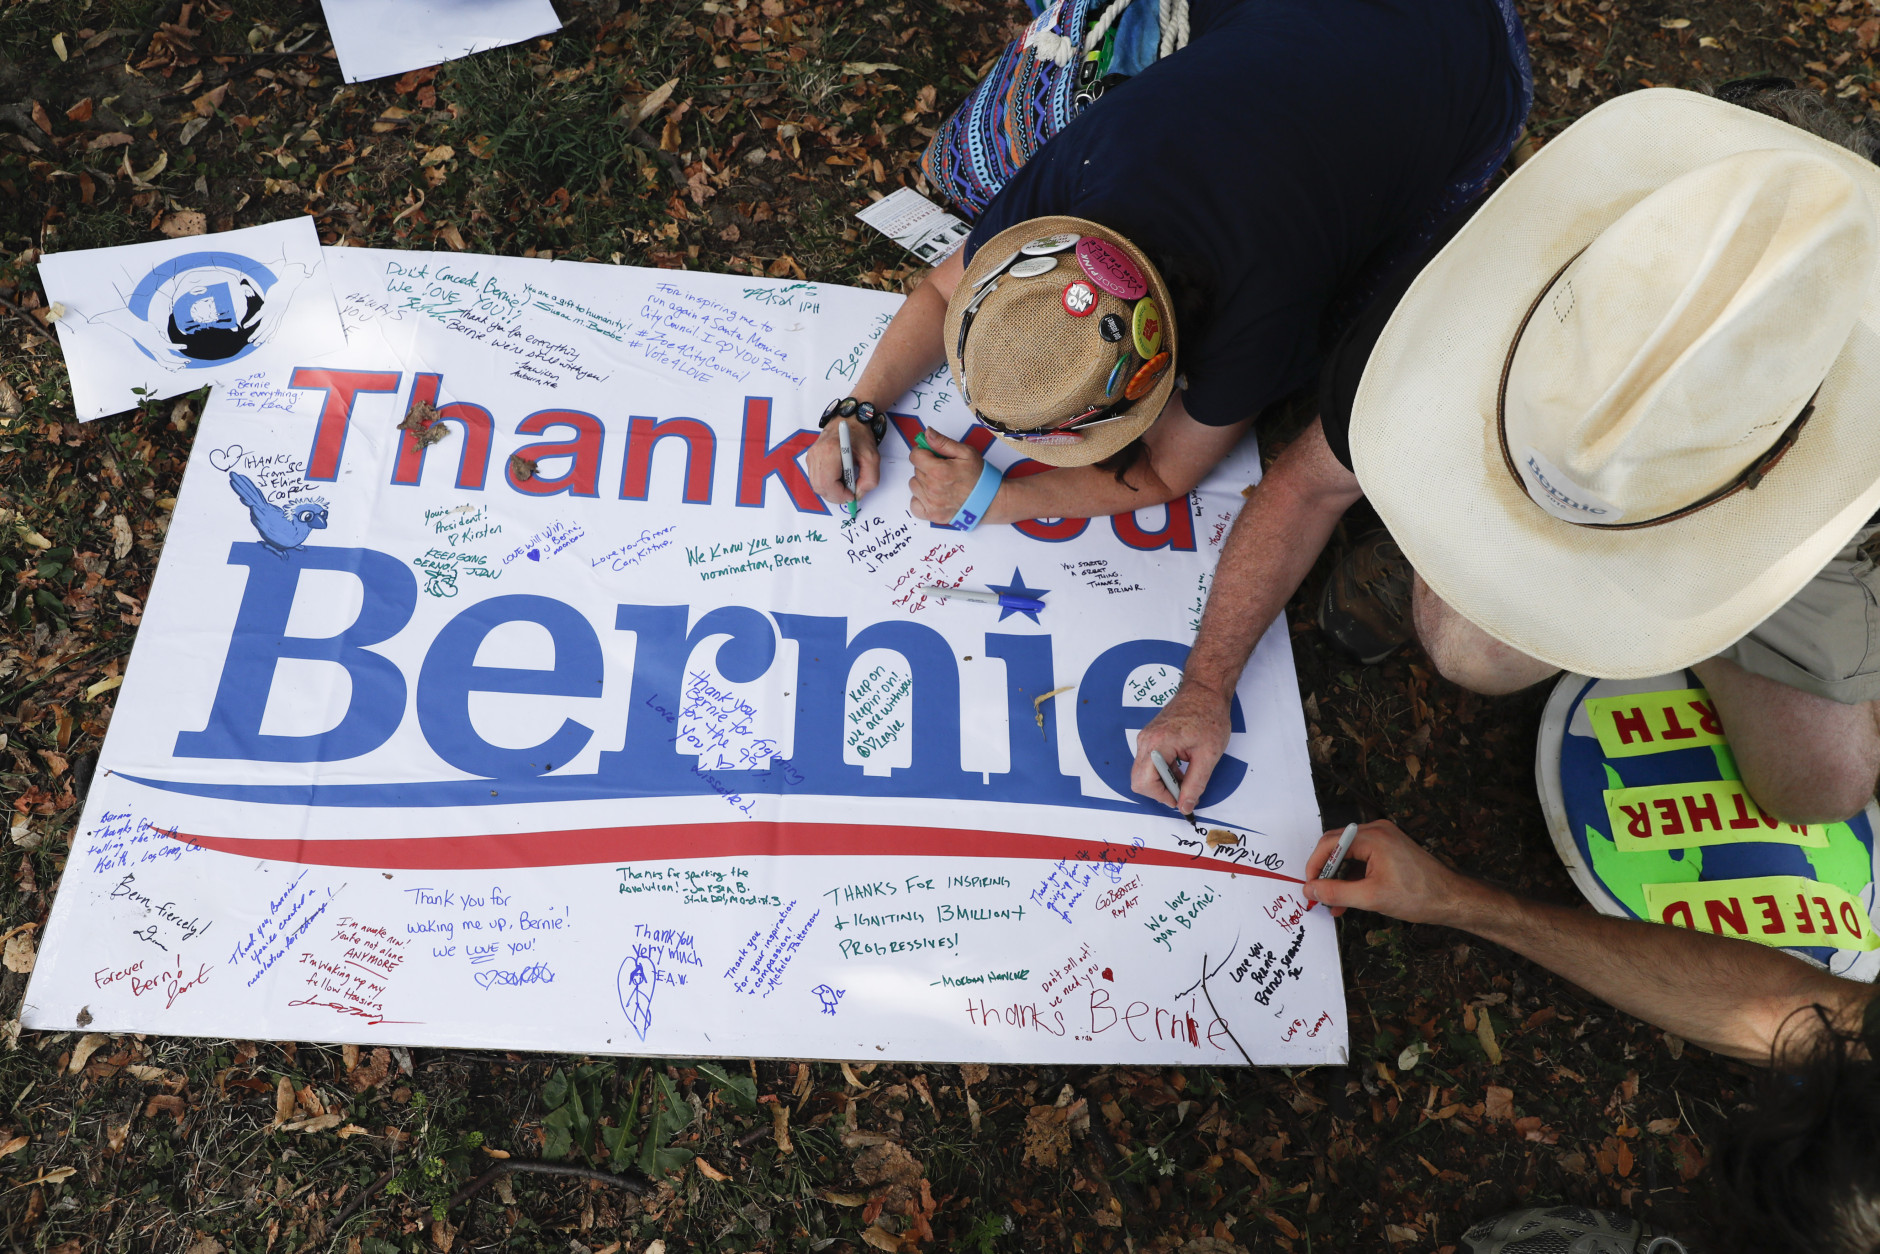 Supporters of Sen. Bernie Sanders, I-Vt., write comments on a sign following a protest march through downtown on Sunday, July 24, 2016, in Philadelphia. The Democratic National Convention starts Monday in Philadelphia. (AP Photo/John Minchillo)